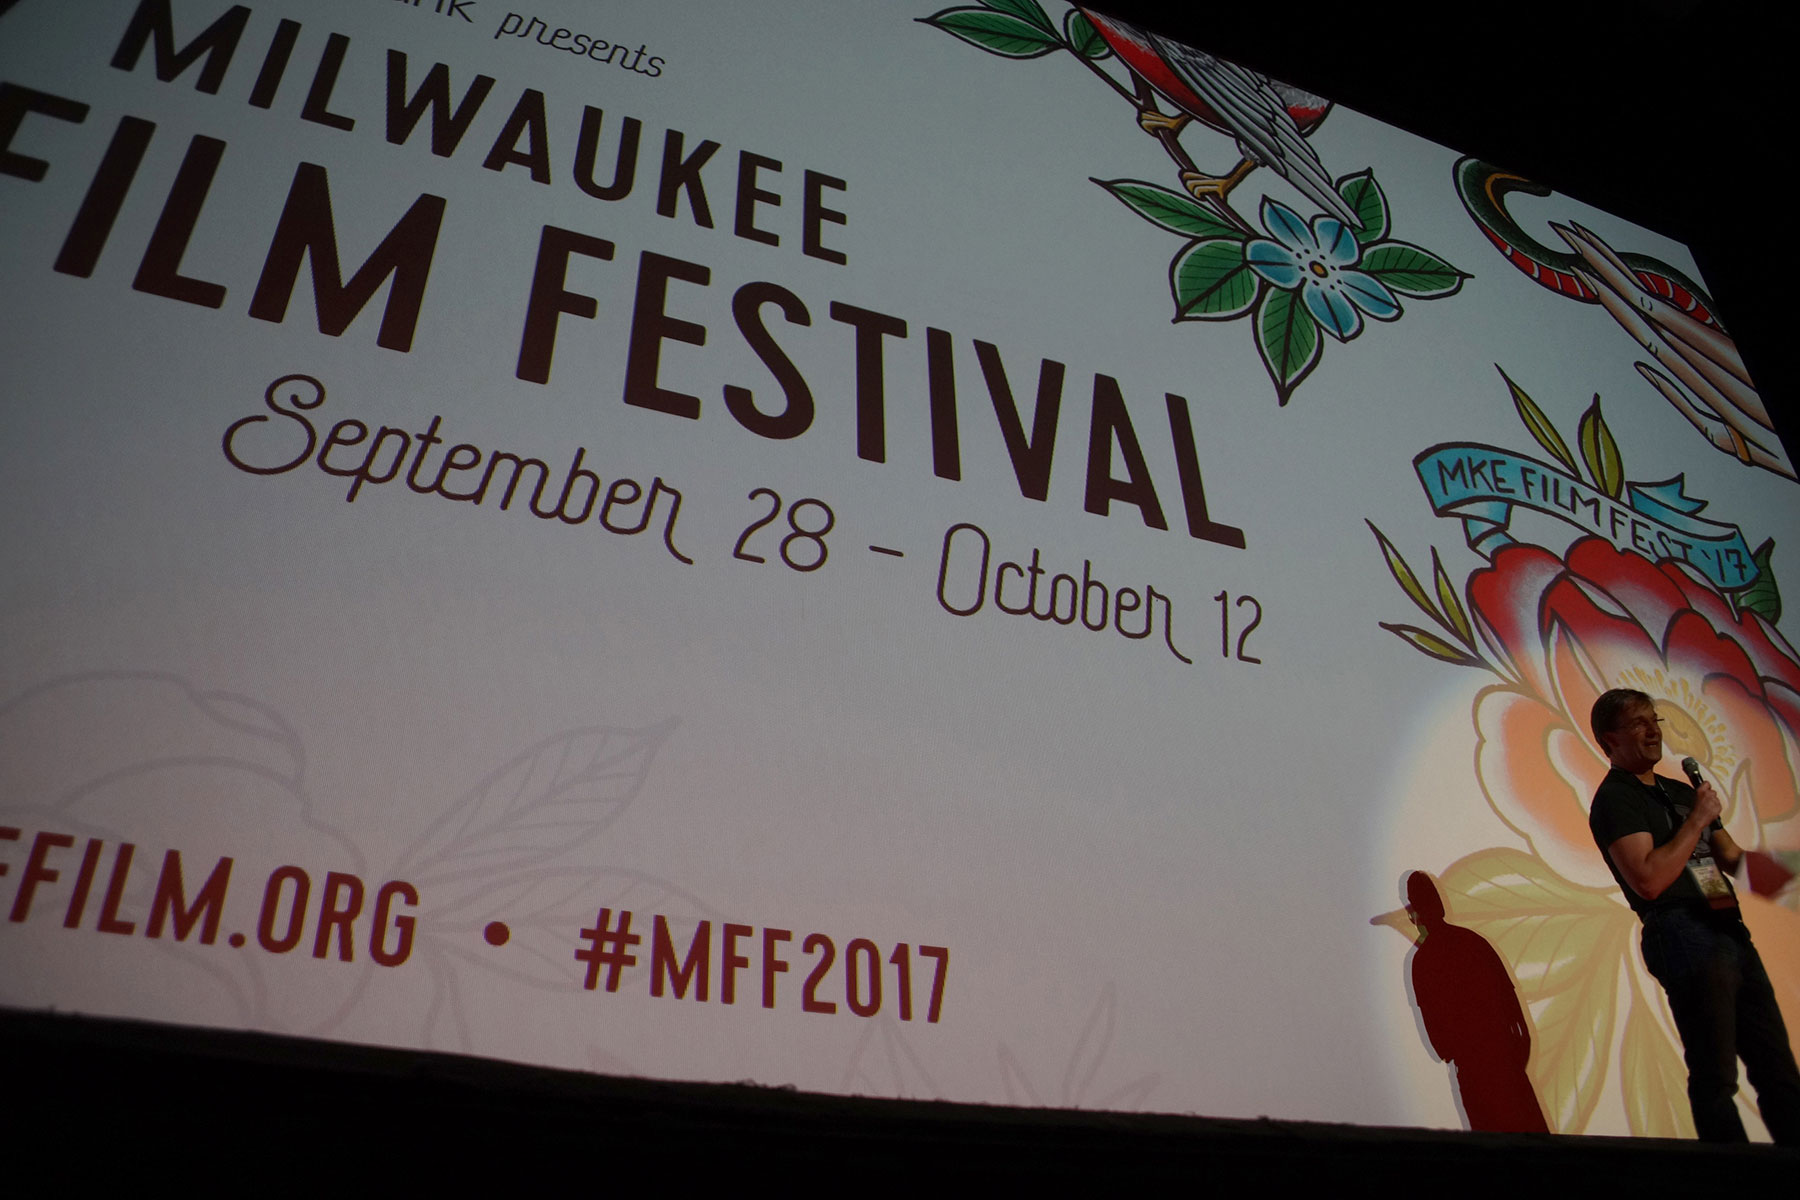 092817_milwaukeefilmopen_385